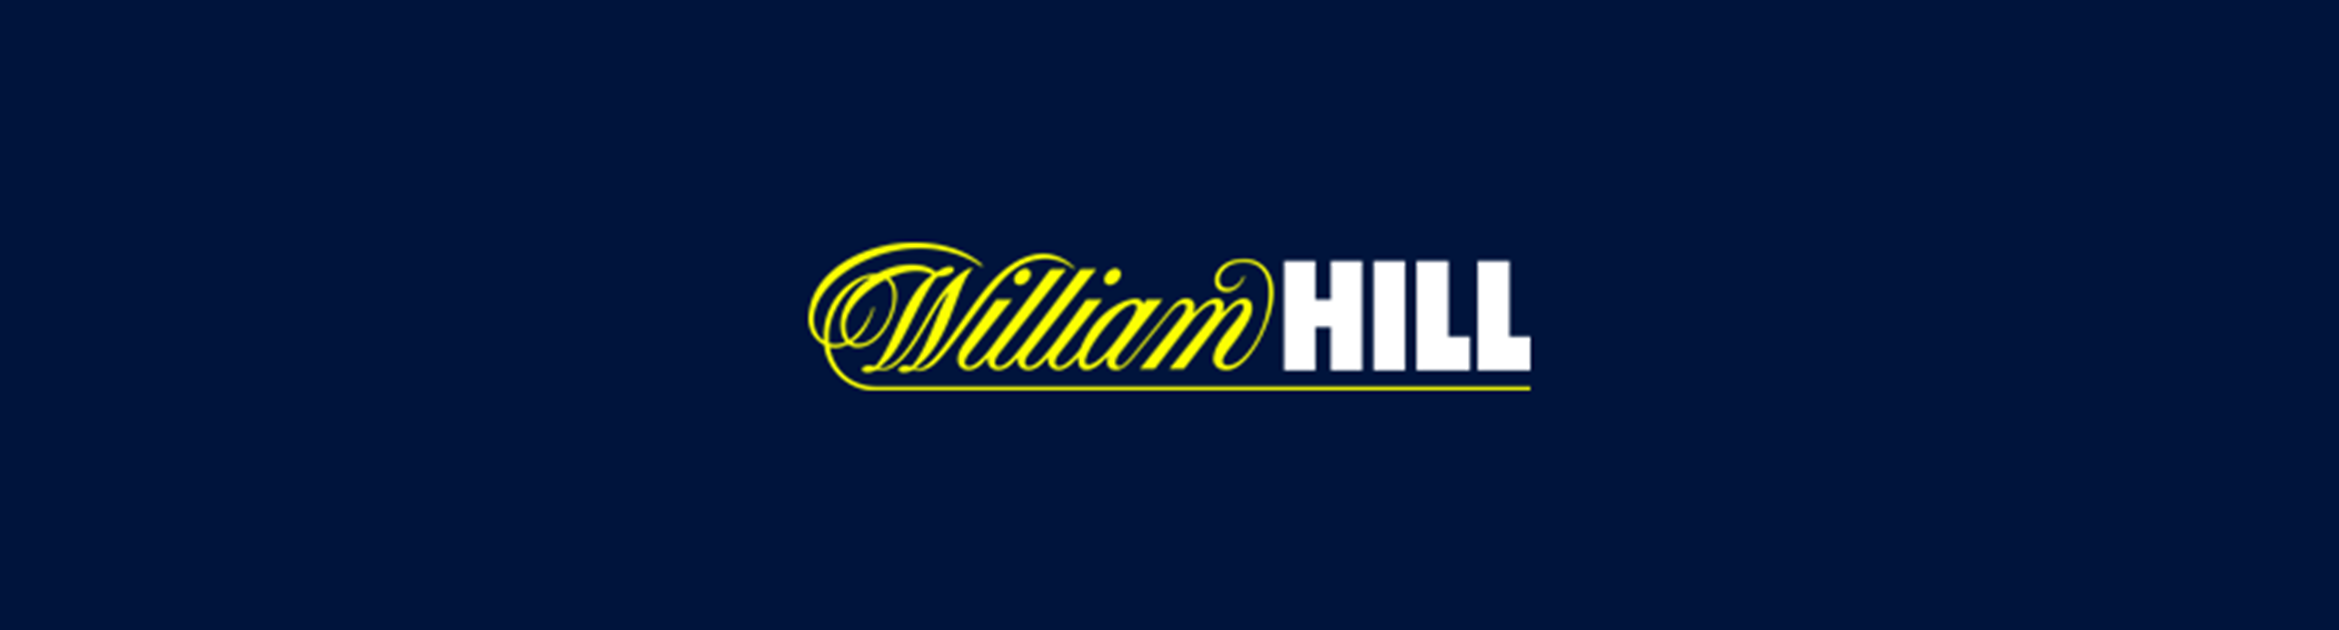 william hill bk